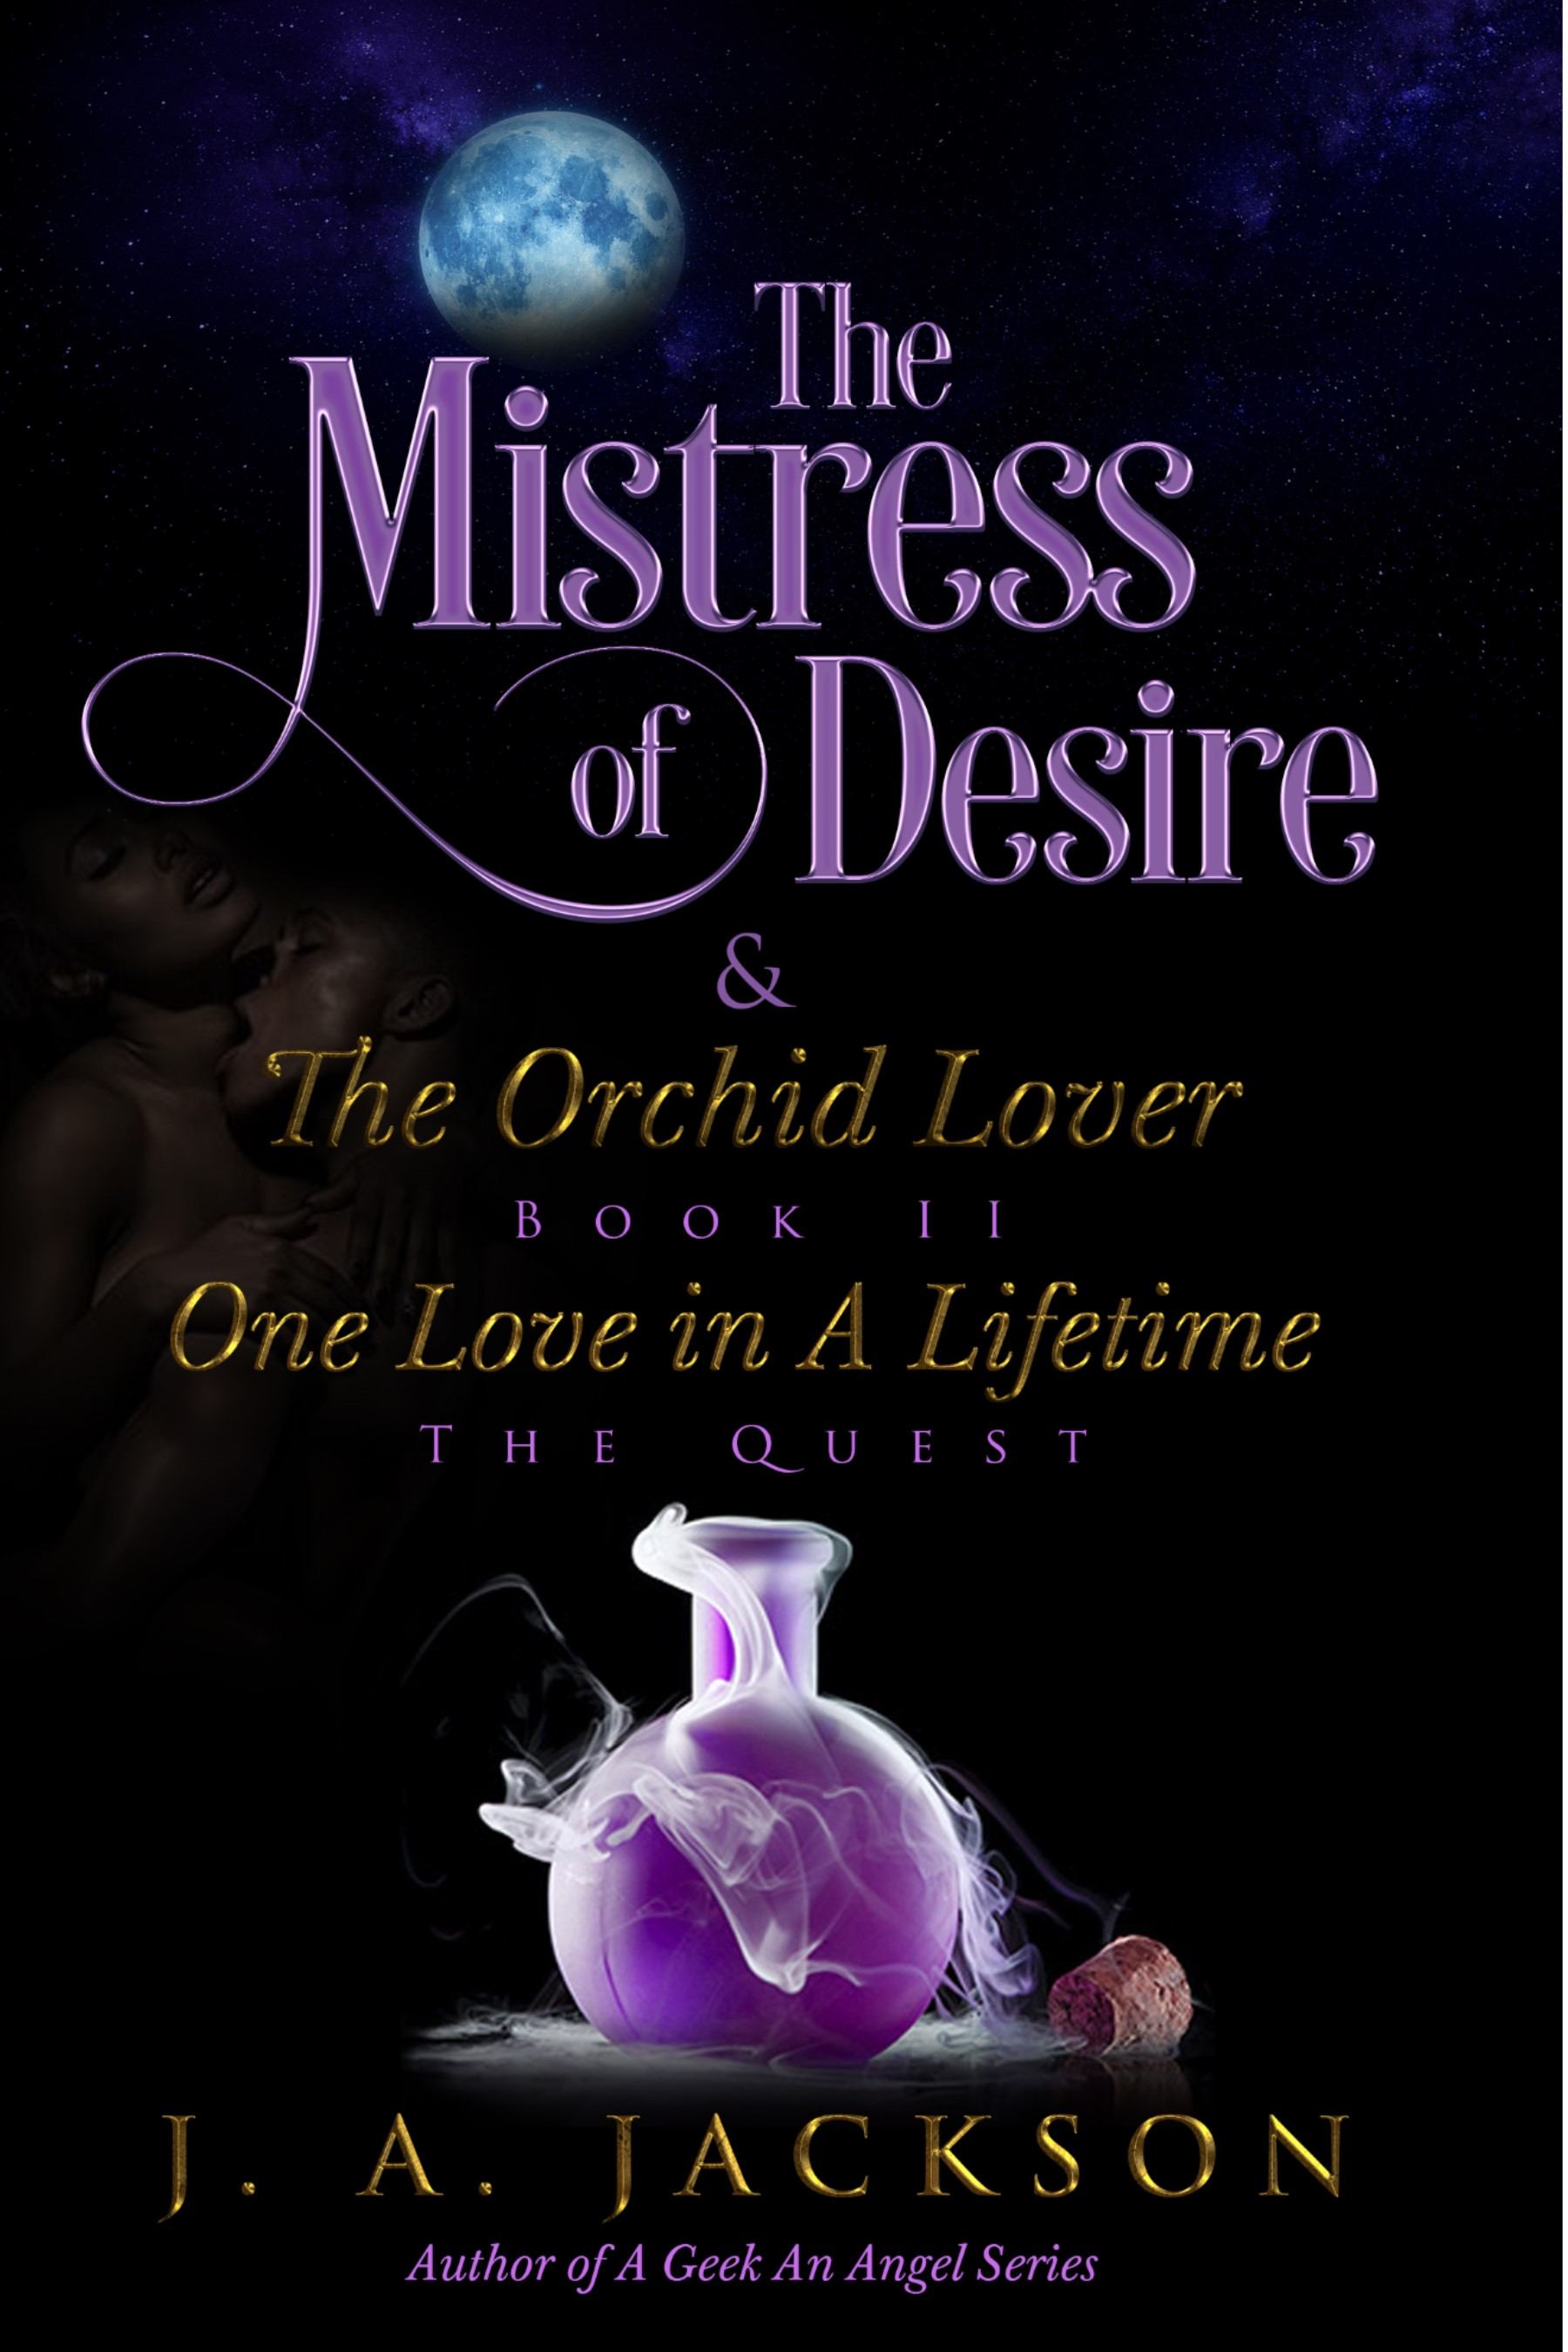 THE MISTRESS OF DESIRE & THE ORCHID LOVER: THE QUEST Book Cover